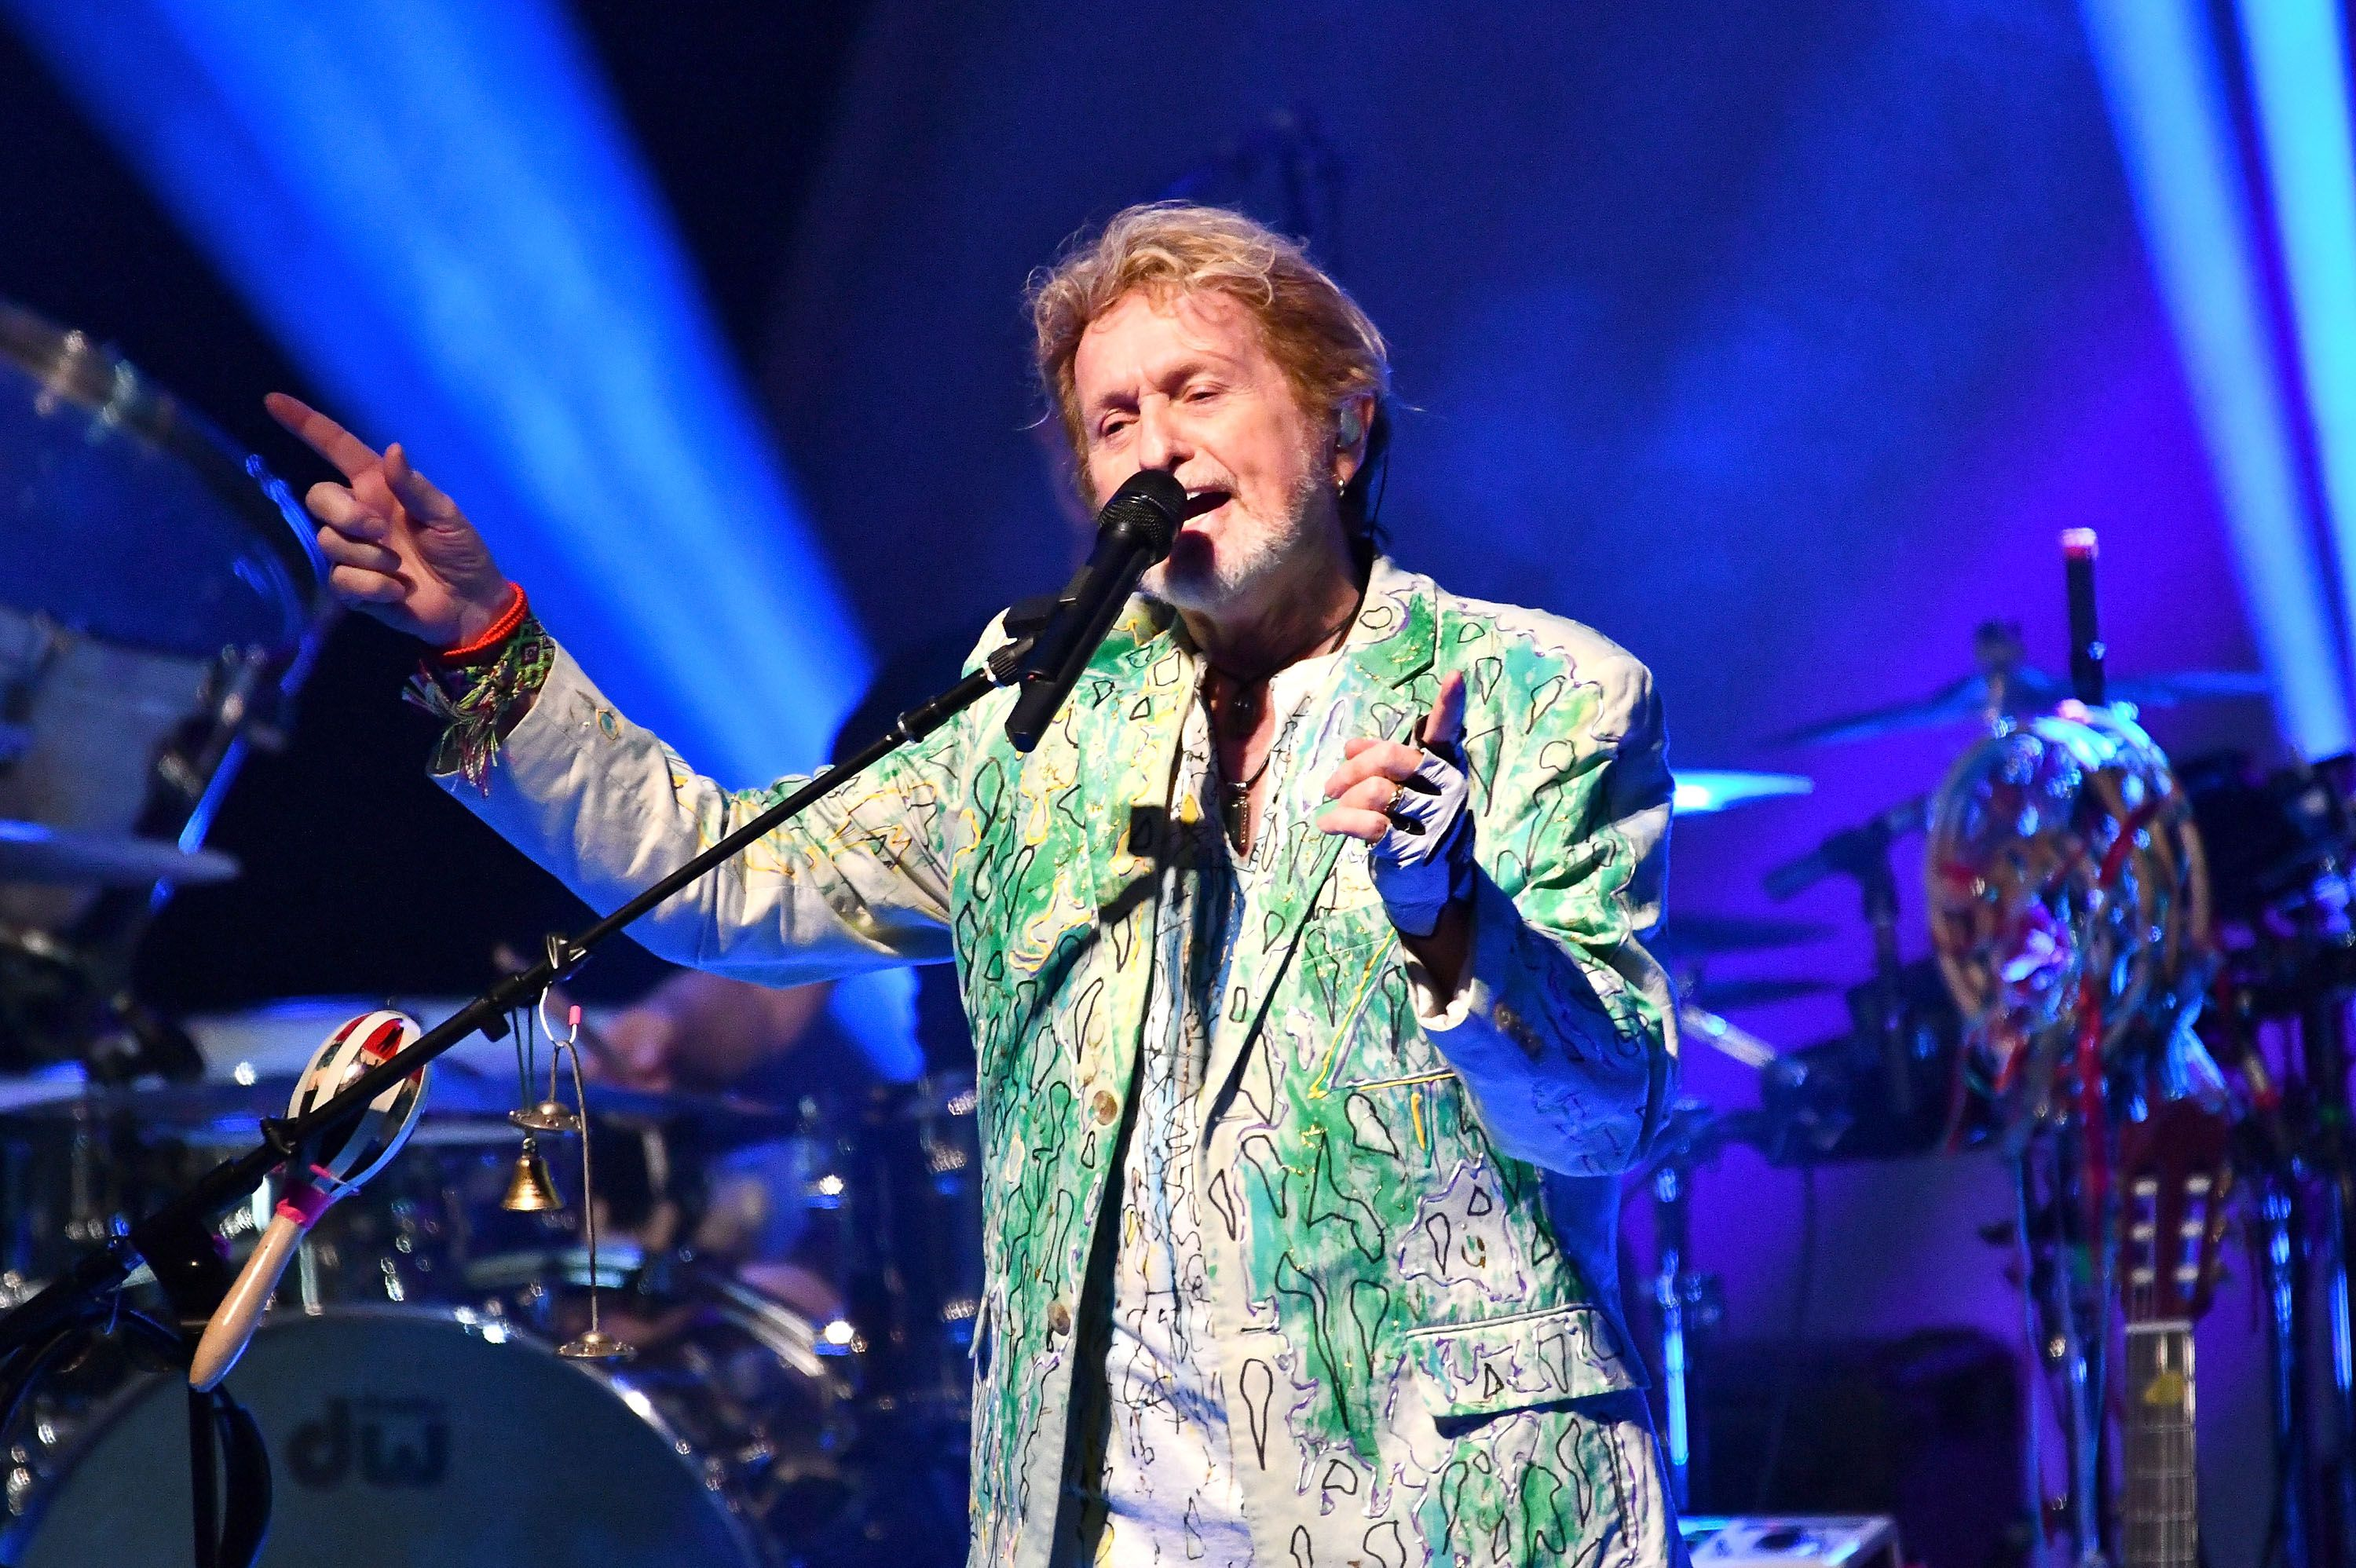 Rock and Roll Hall of Fame member Jon Anderson, singer of the classic rock band YES